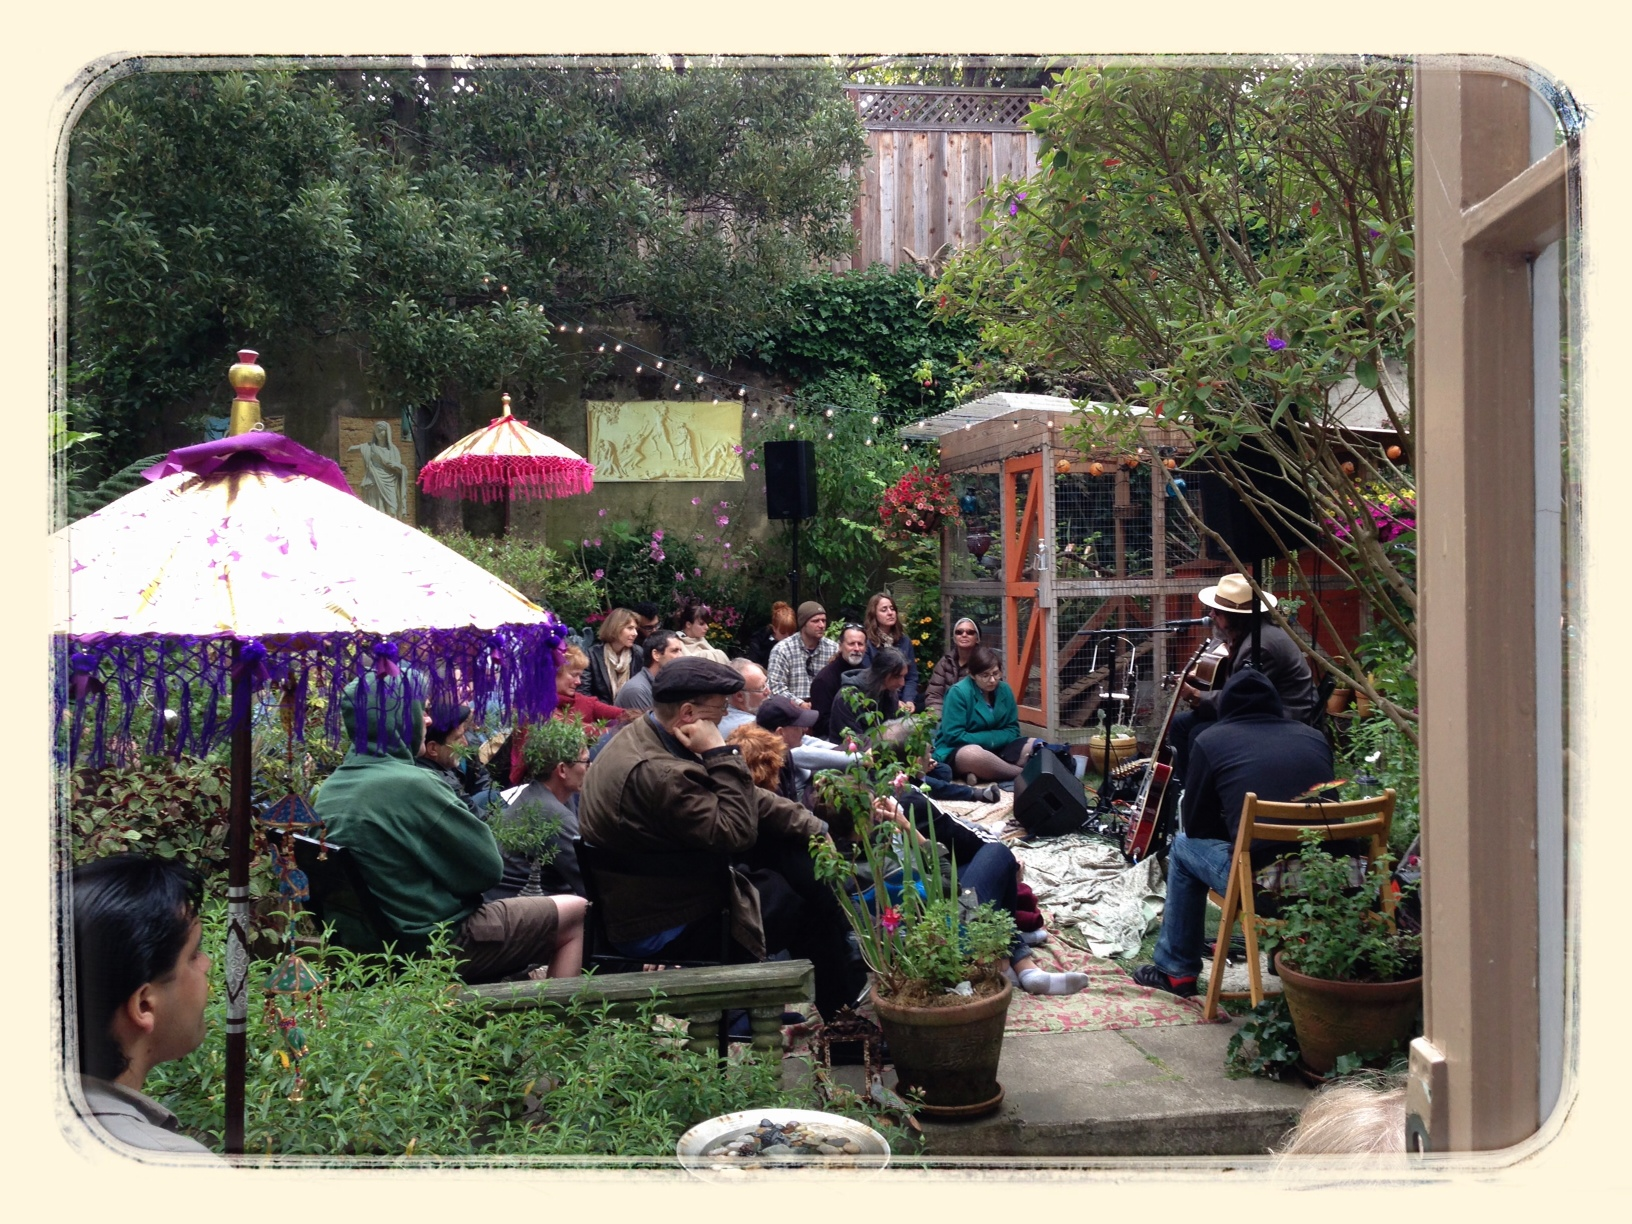 backyard concert with peter case